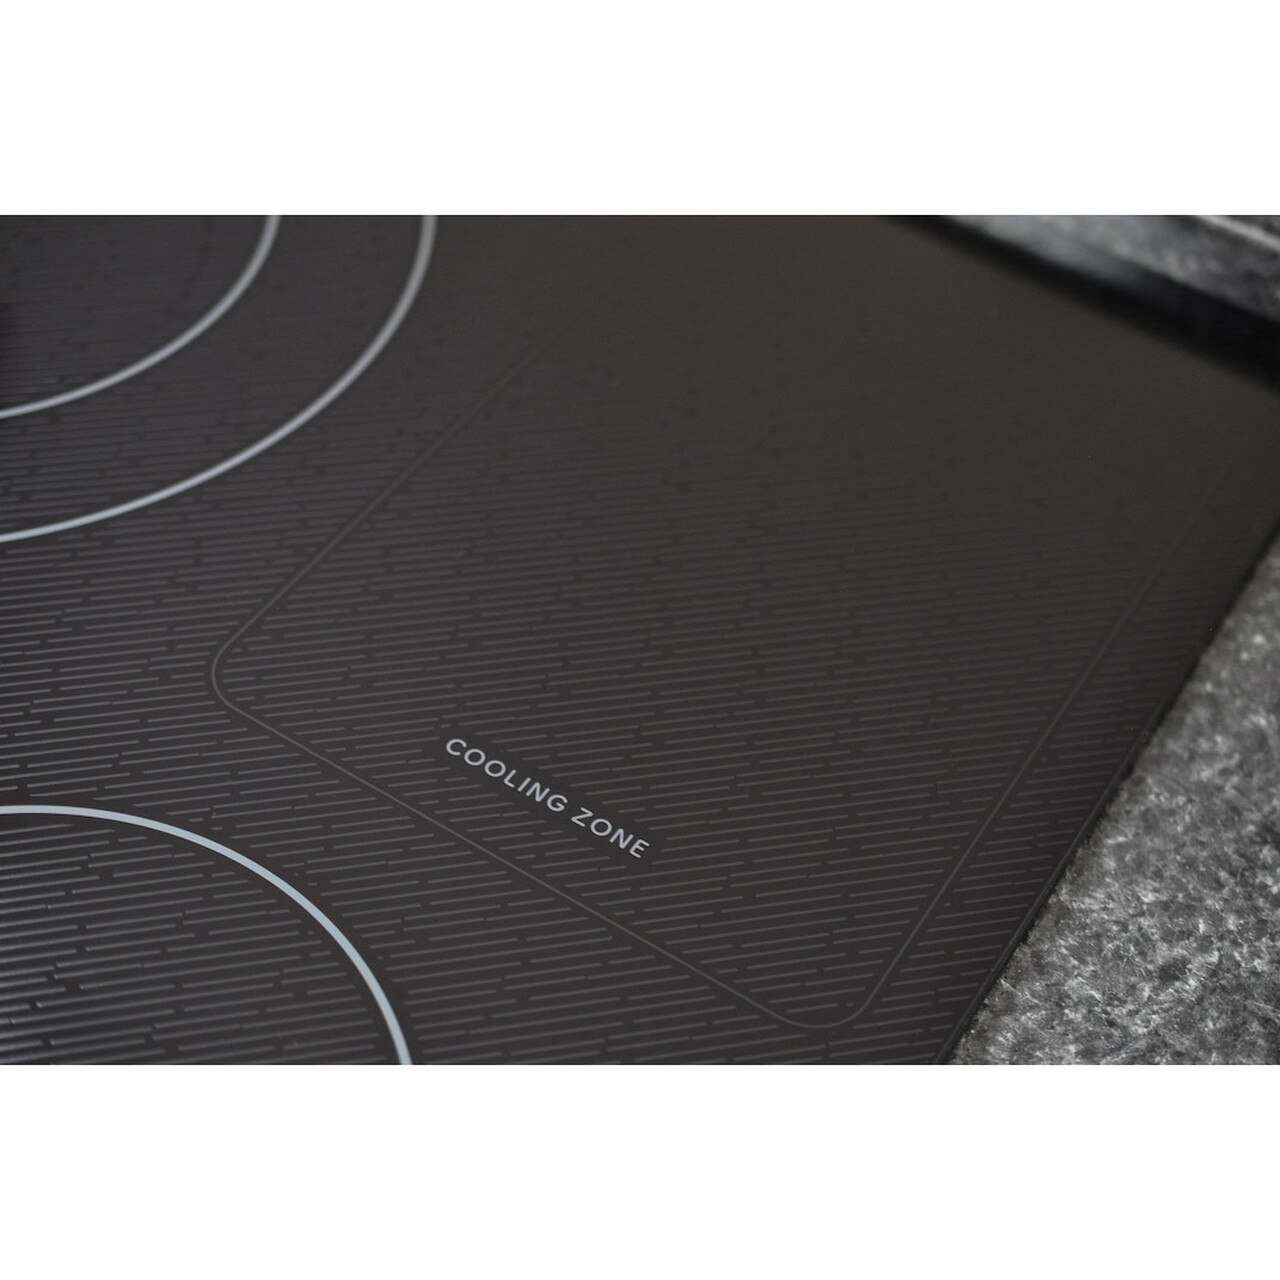 30 in. Width Induction Cooktop, European Black Mirror Finish Made with Premium SCHOTT® Glass Photo #5